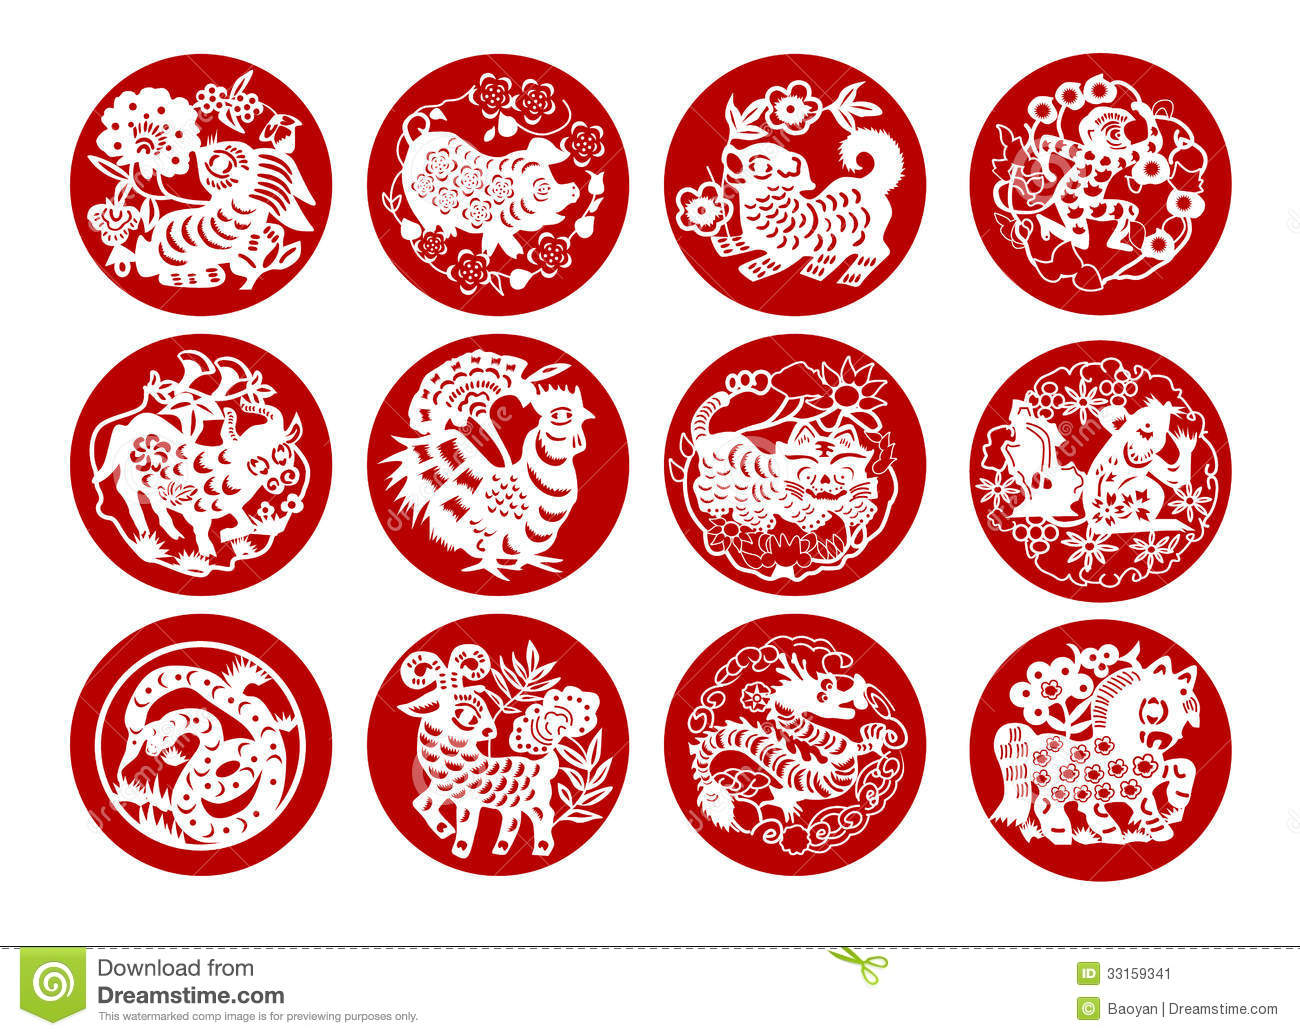 Animals Of Chinese Calendar Stock Image - Image: 33159341